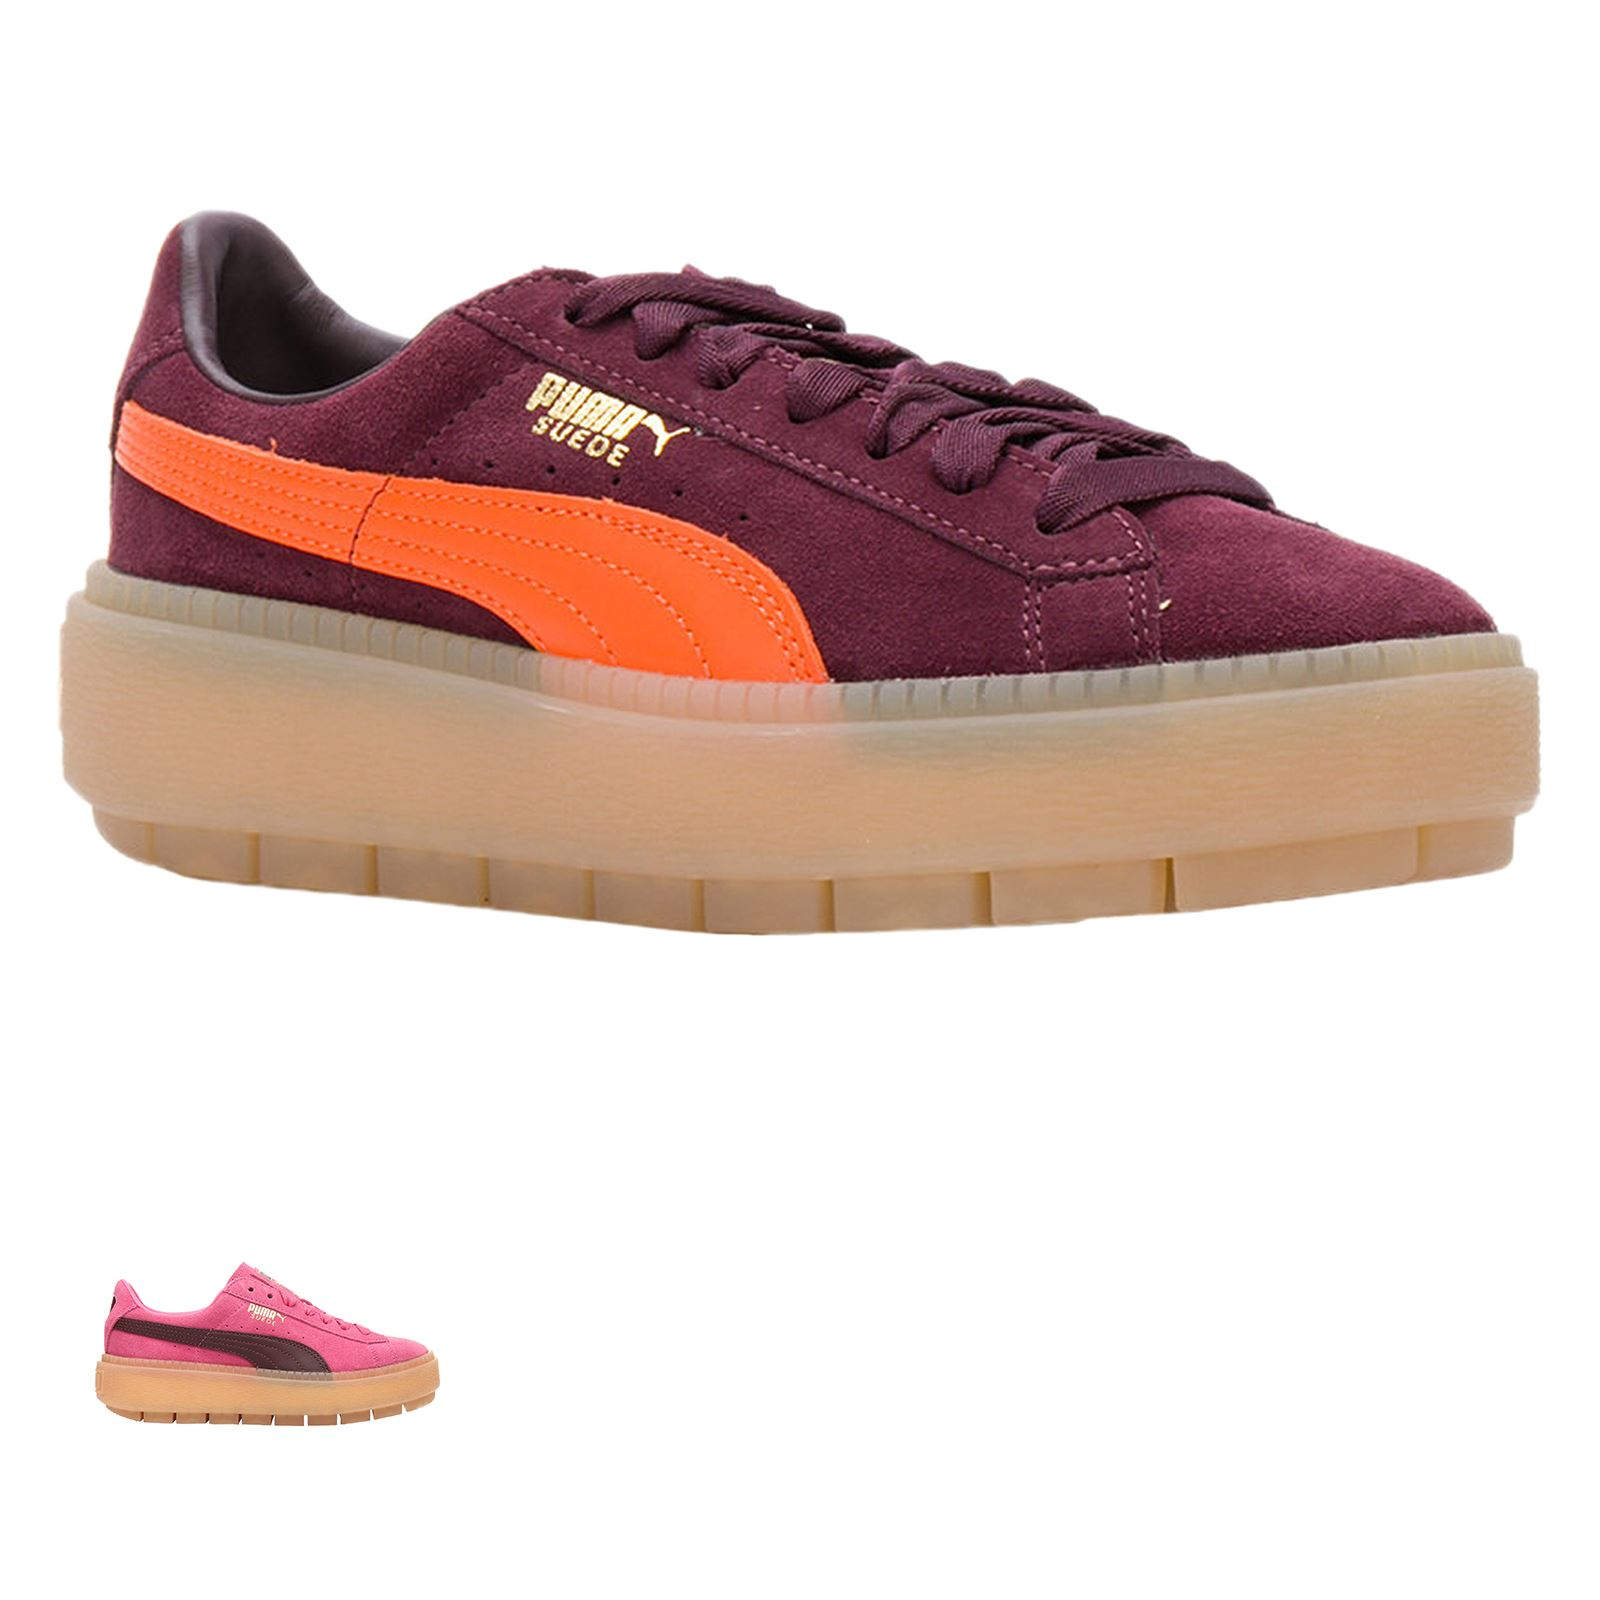 0f2fab31f26 Puma Platform Trace Block Wns Suede Low-top Lace-up Sneakers ...